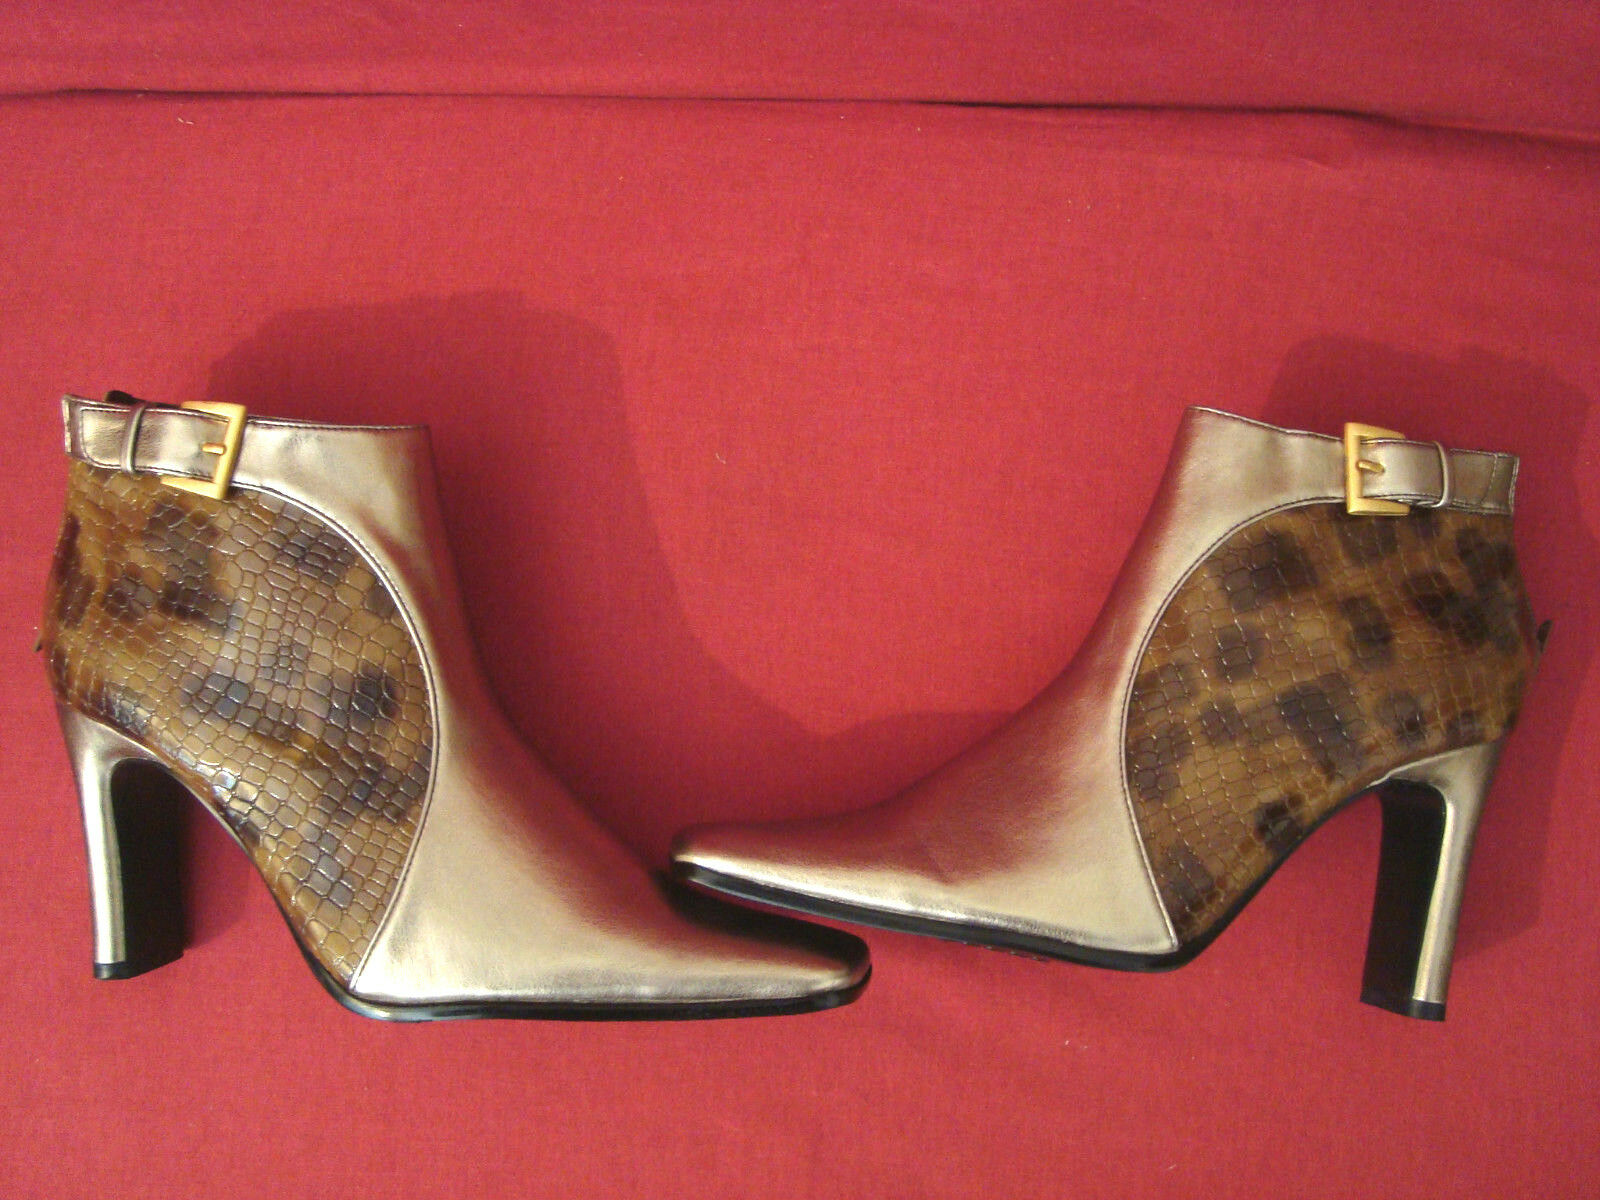 NEW STEFANI COLLECTIONS Damenschuhe  Schuhe WITHOUT BOX